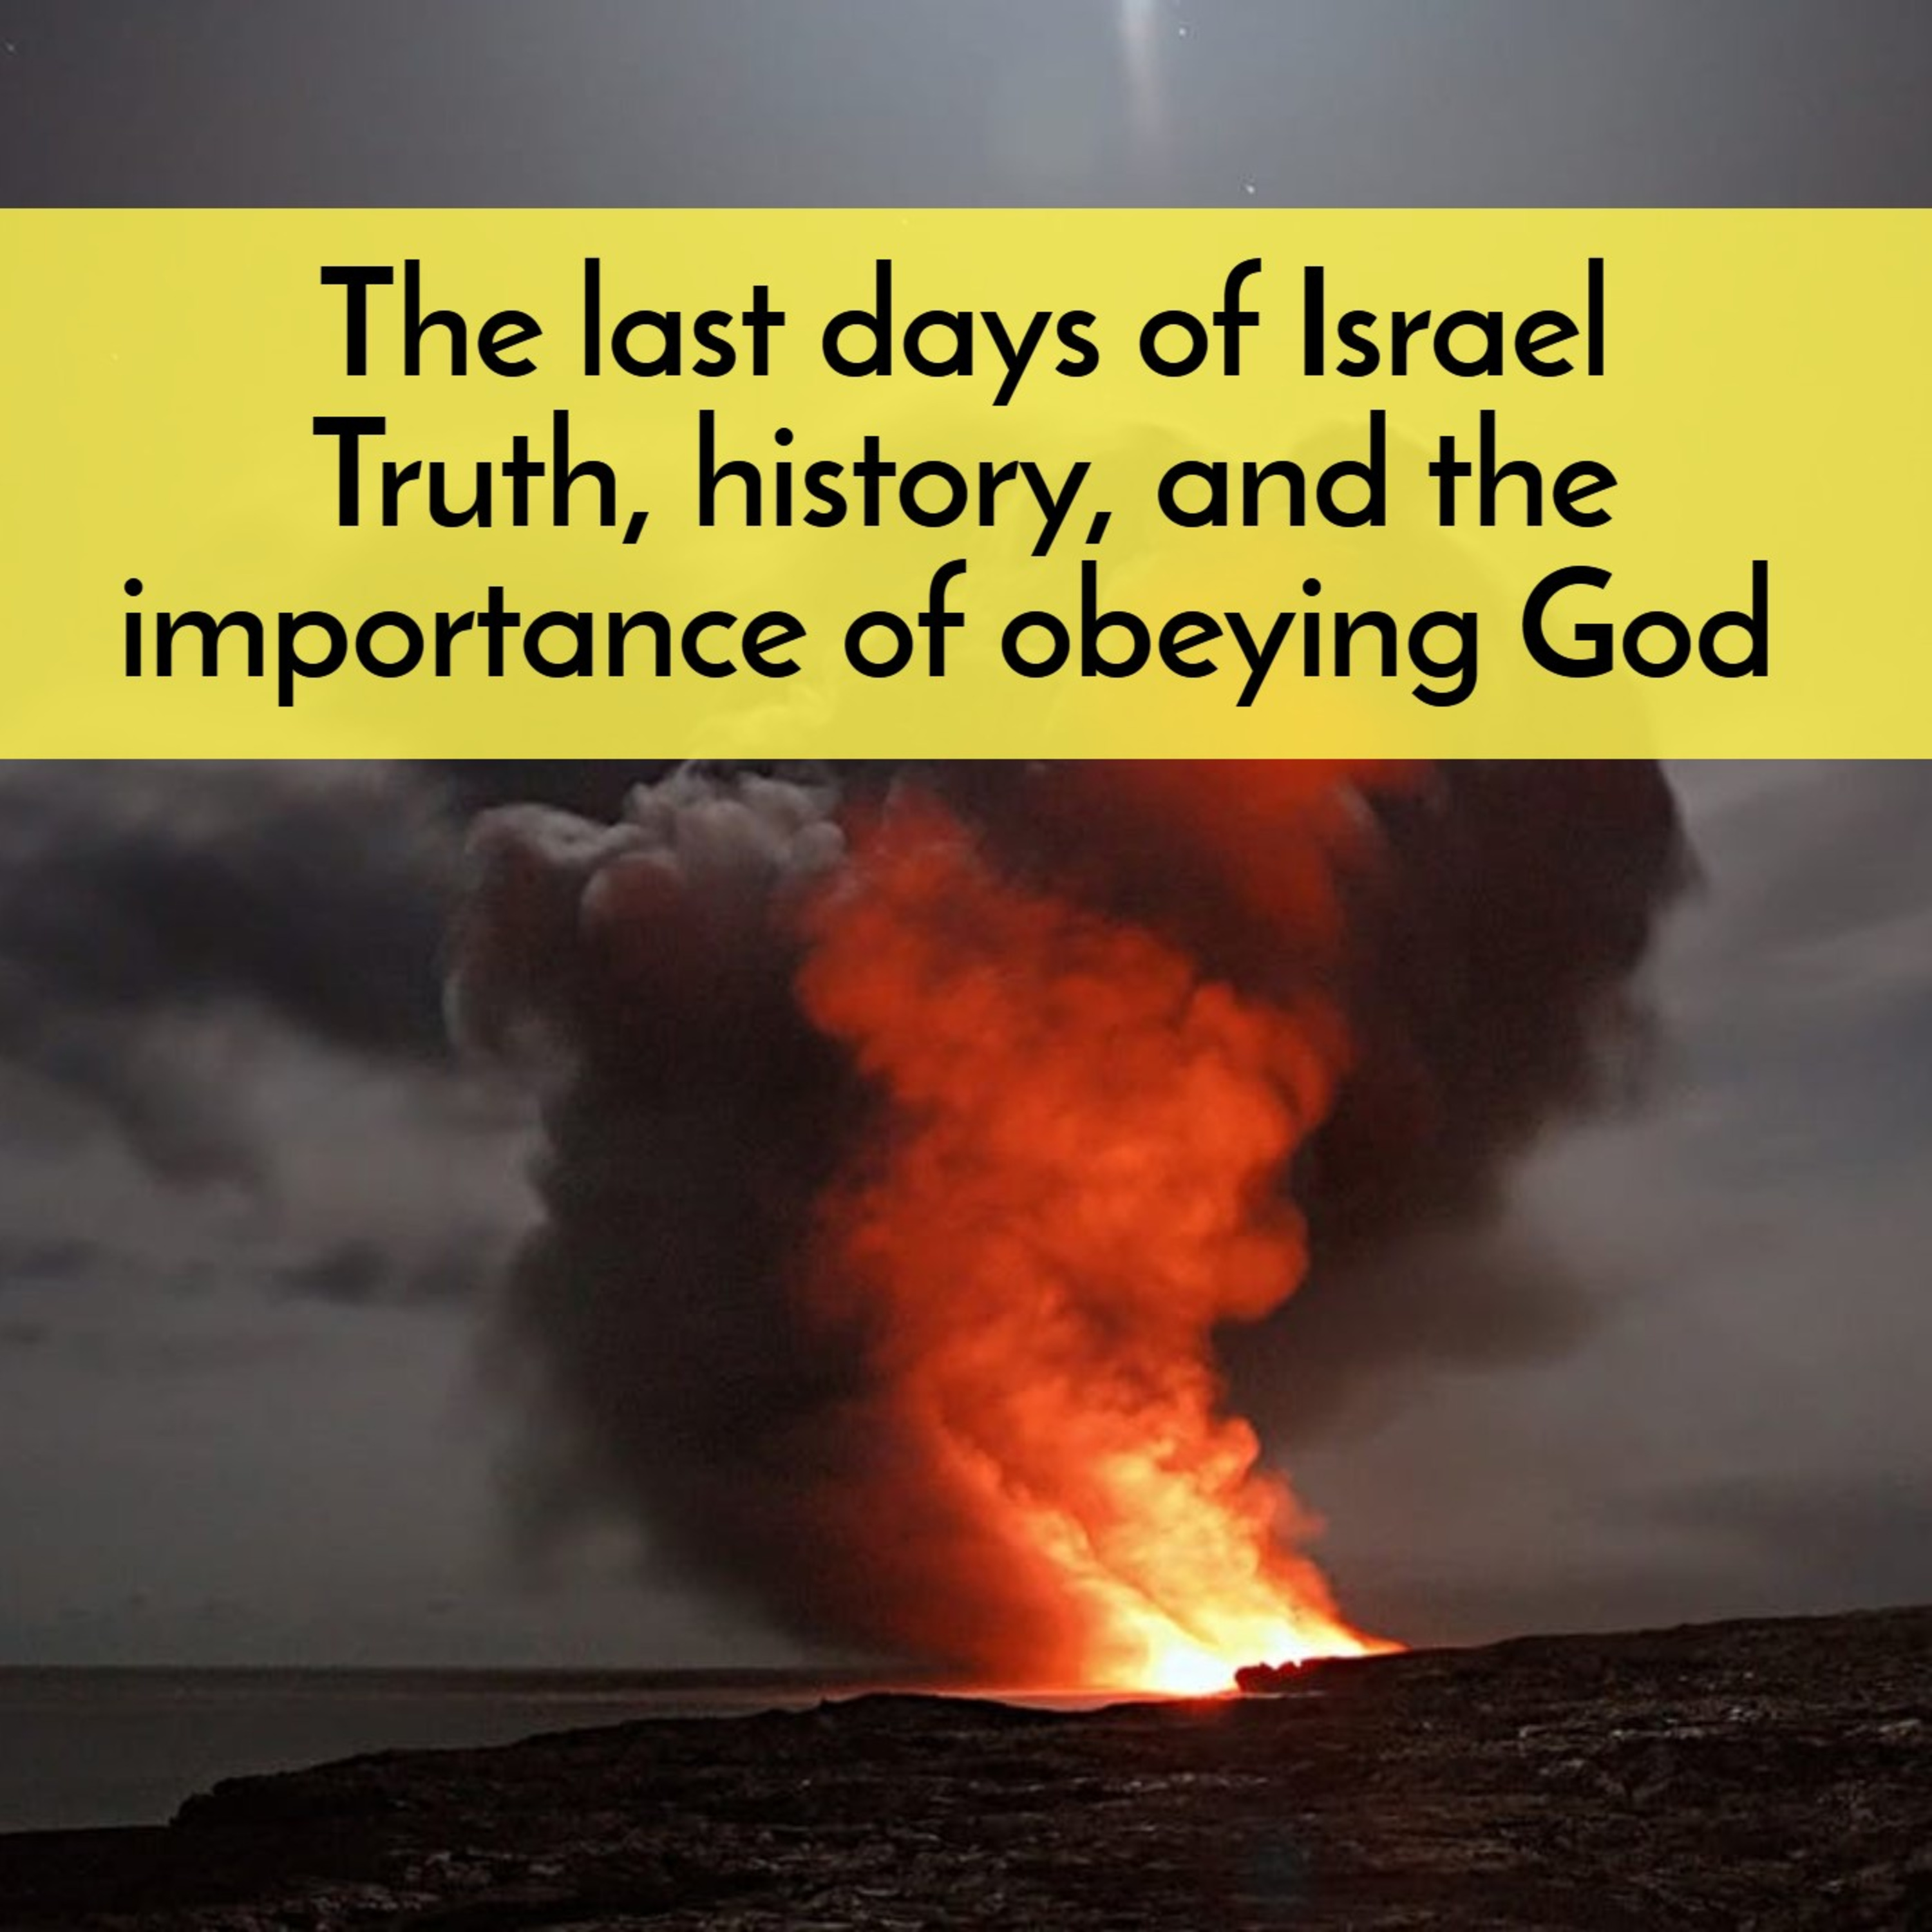 #43 The last days of Israel and what they teach us about truth, history, and the importance of obeying God